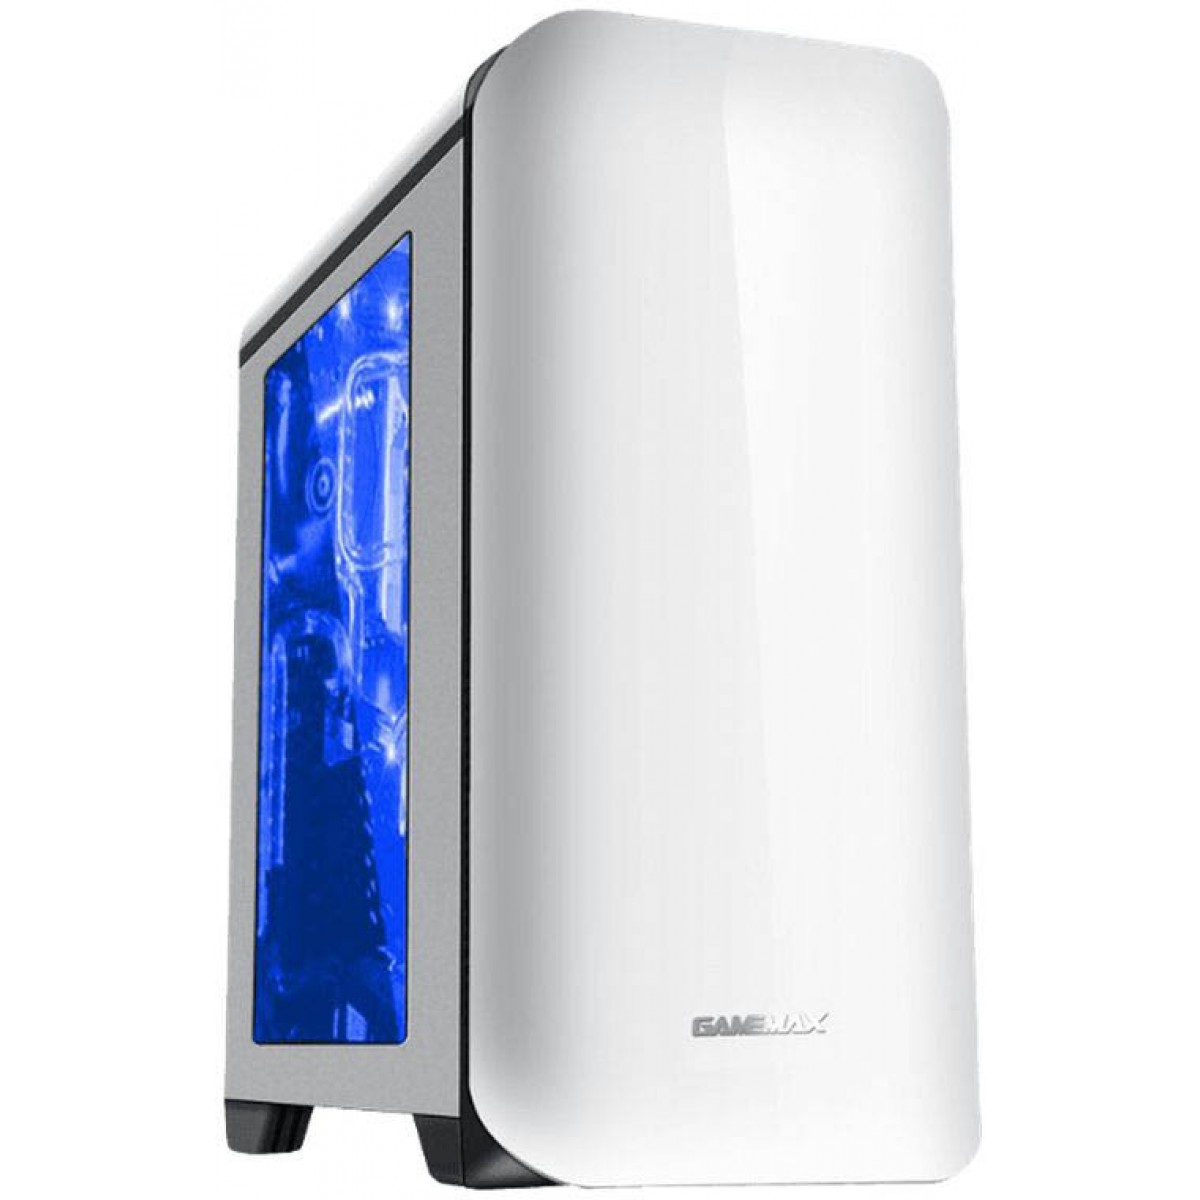 Gabinete Gamer Gamemax H602W, Mid Tower, Com 3 Fans, Painel Lateral, White, Sem Fonte